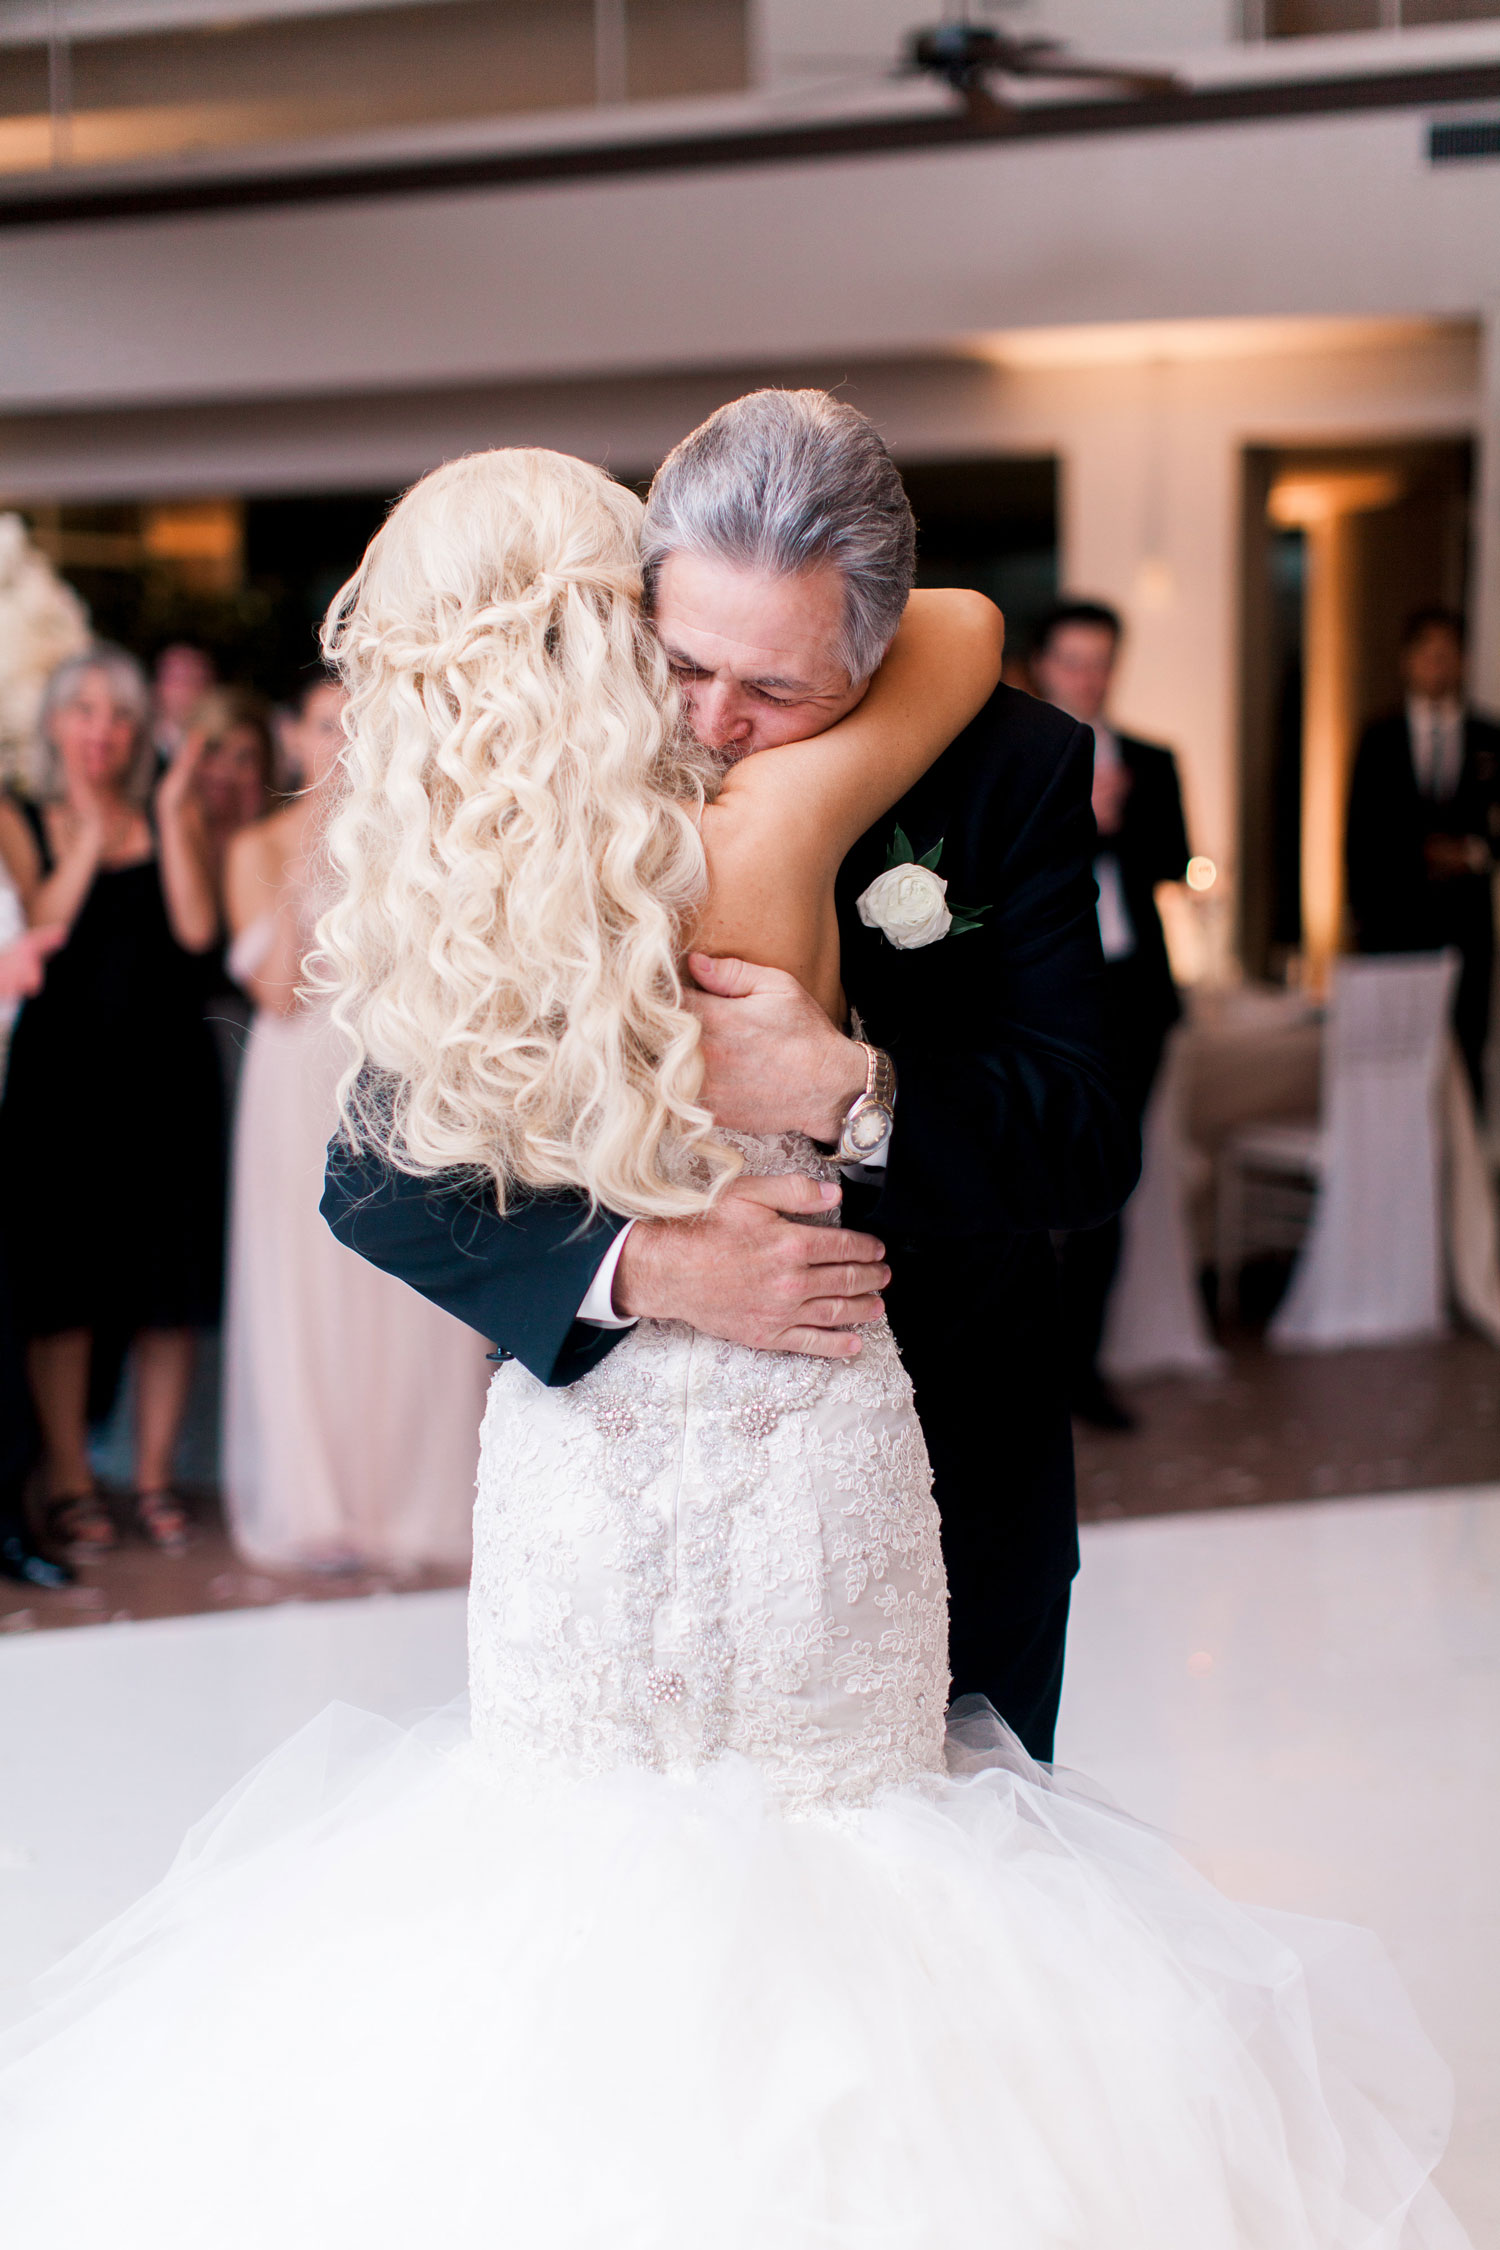 Sweet moment of bride with father of bride during father daughter dance